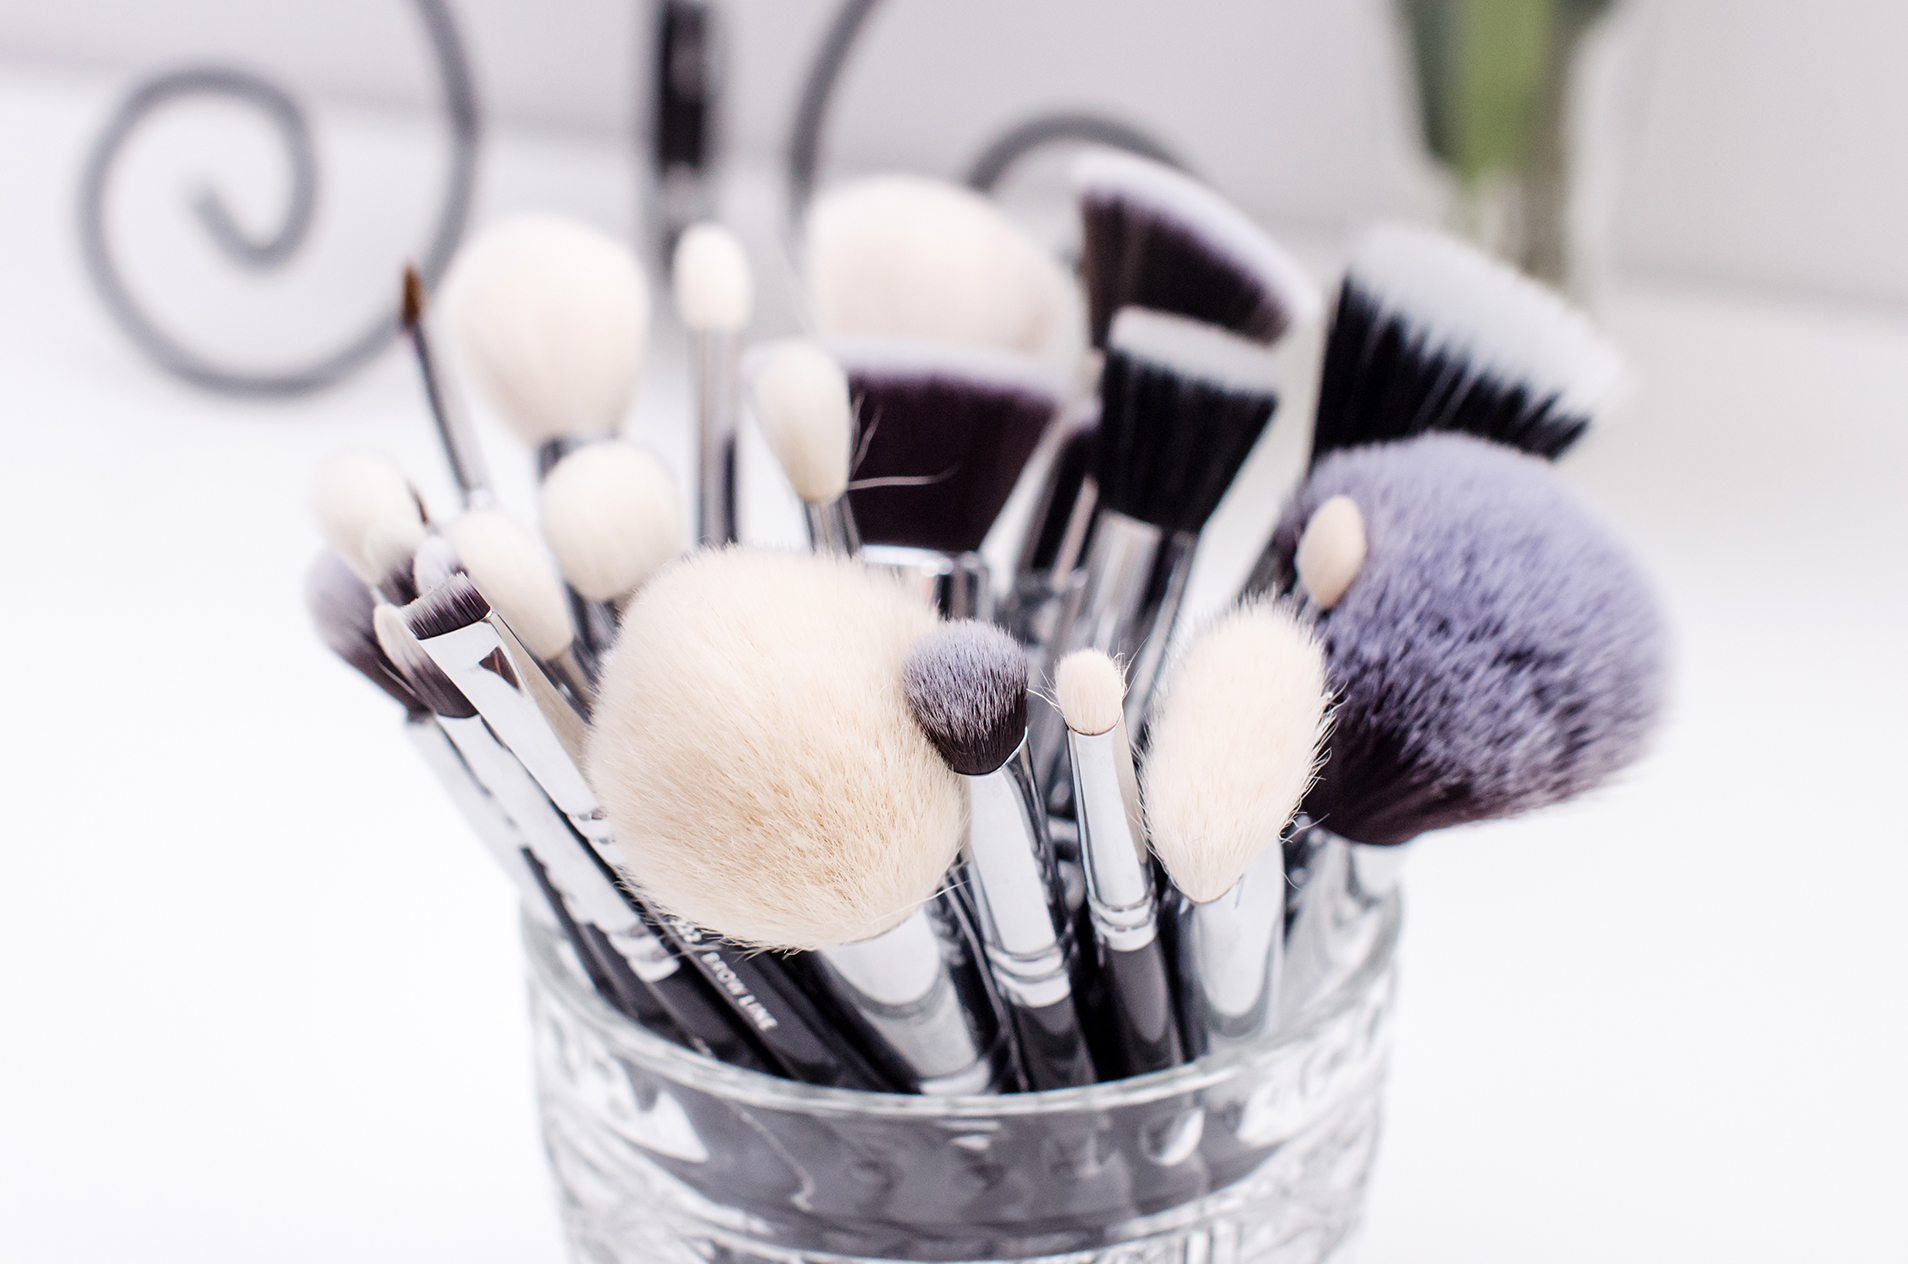 Zoeva_makeup_artist_brush_set_review_pink_wish_4c